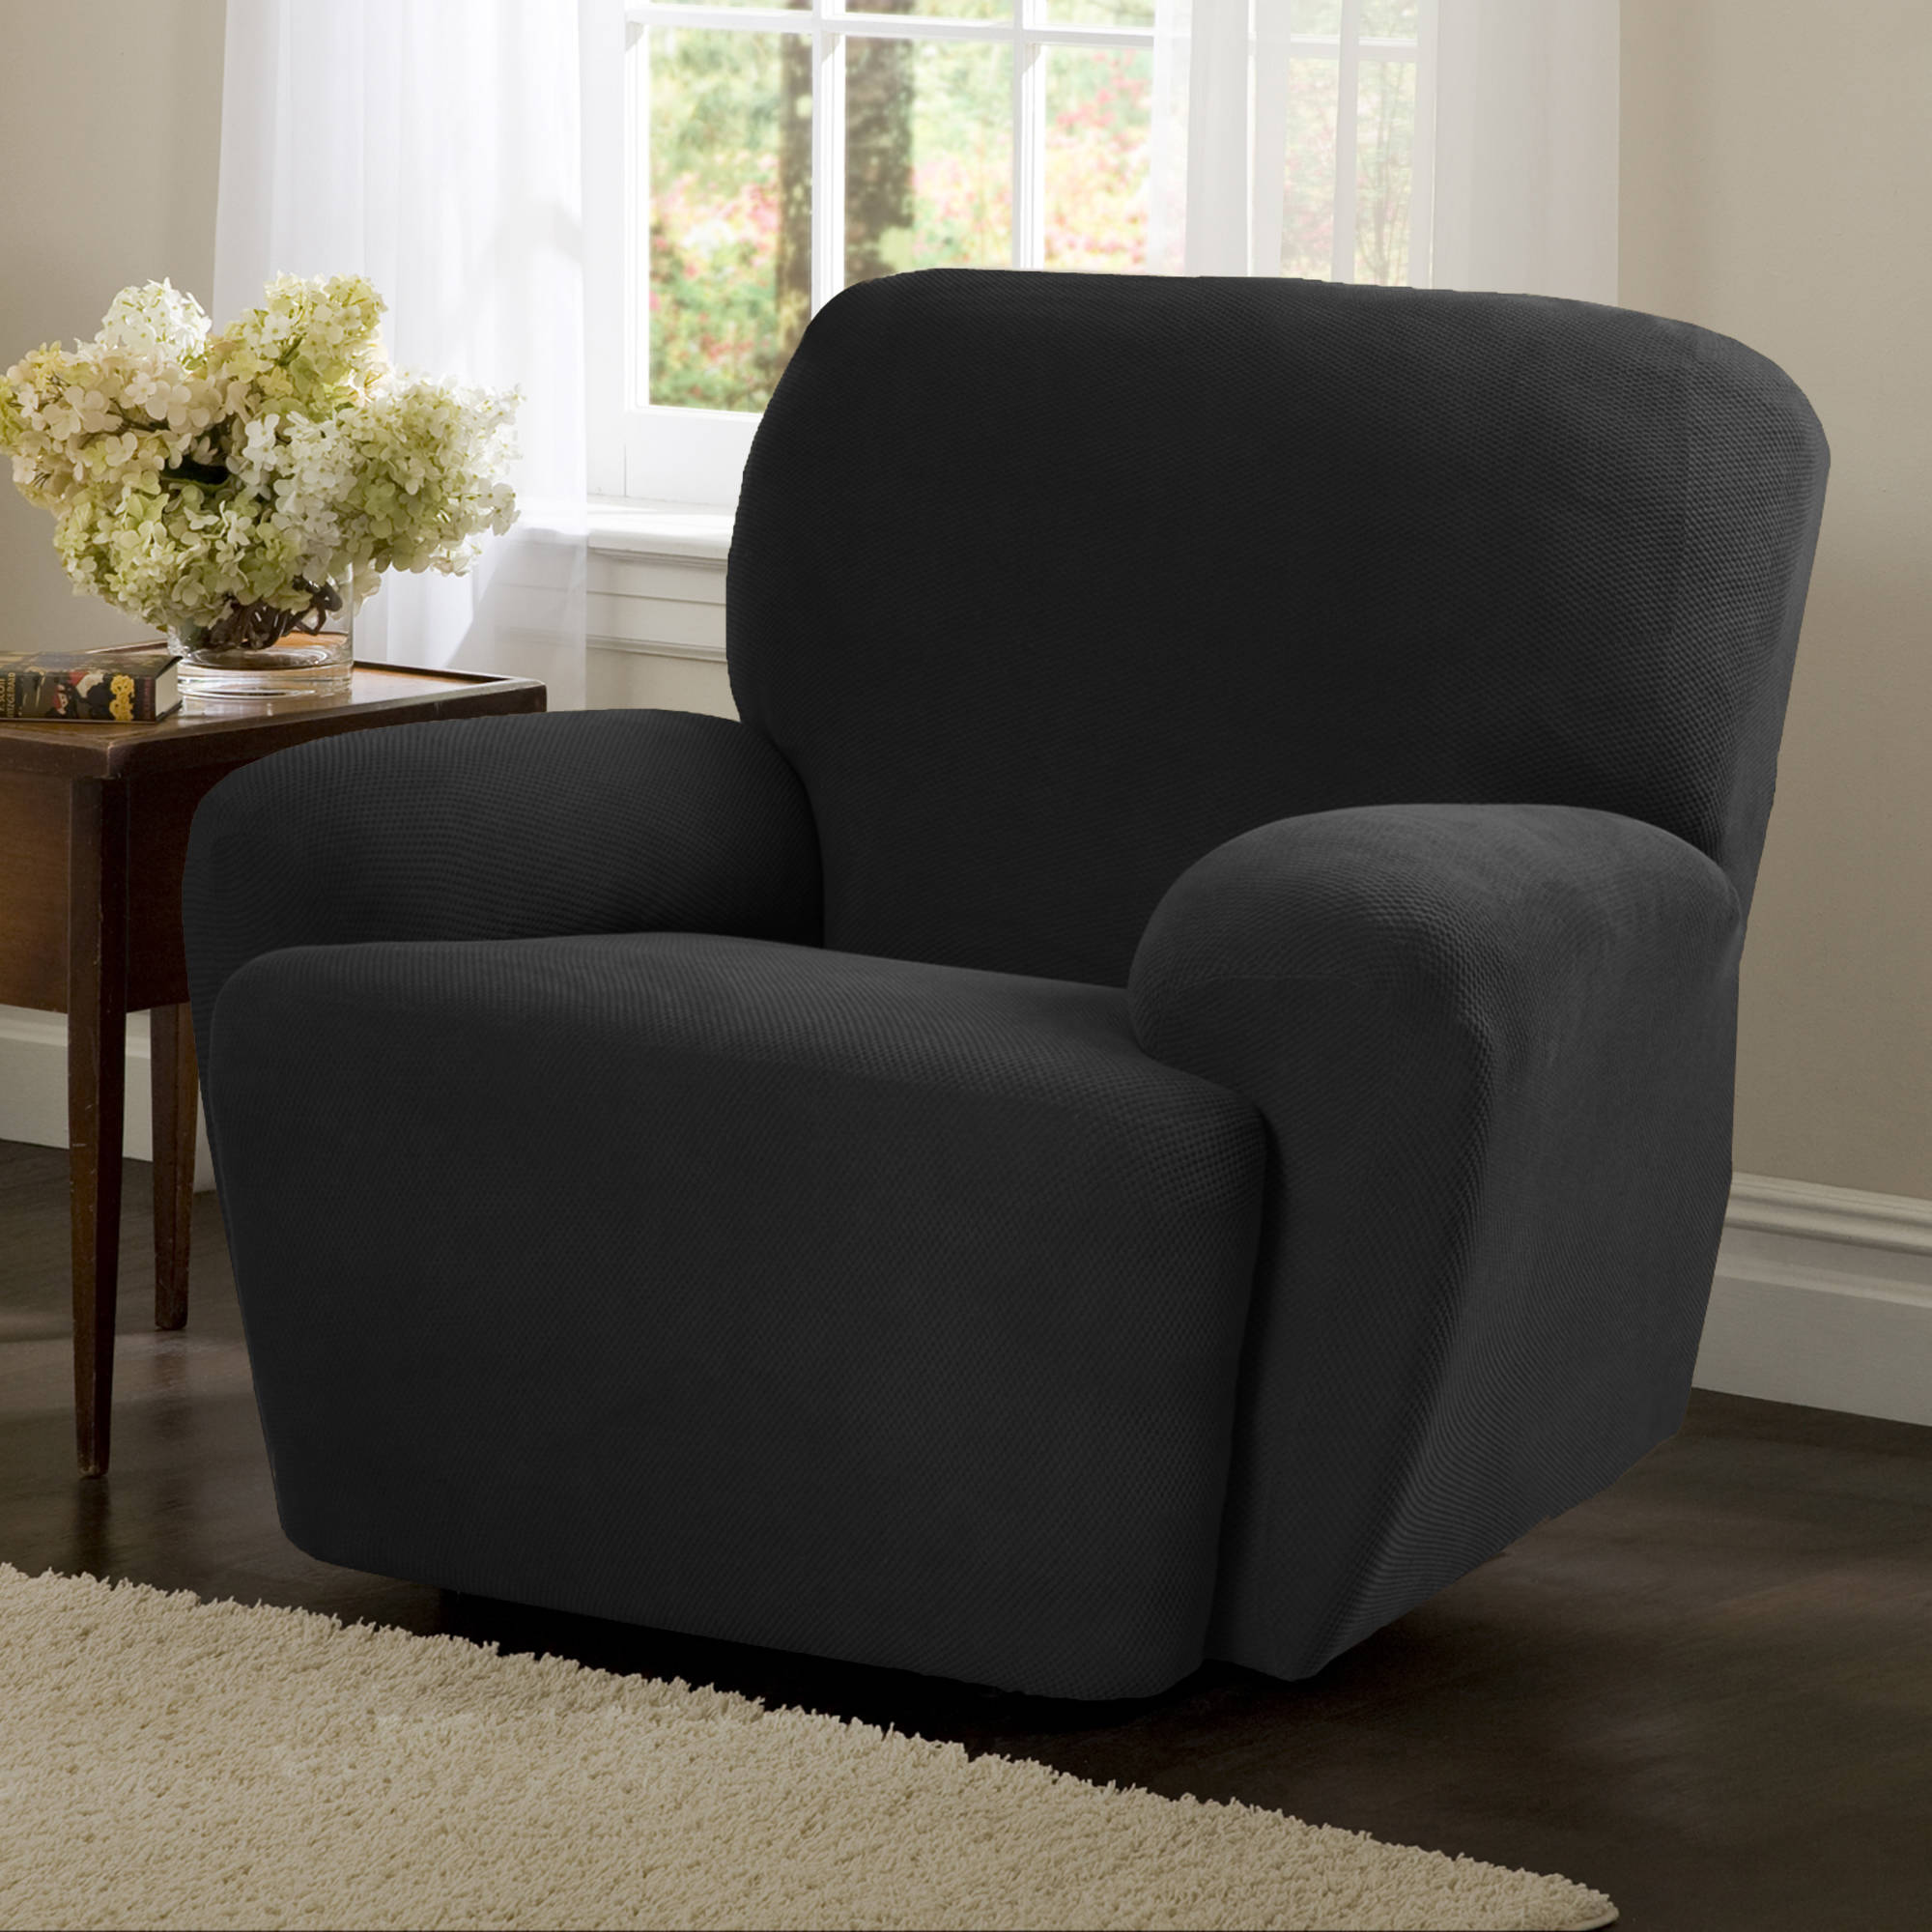 Maytex Pixel Stretch 4 Piece Recliner Chair Furniture Cover Slipcover